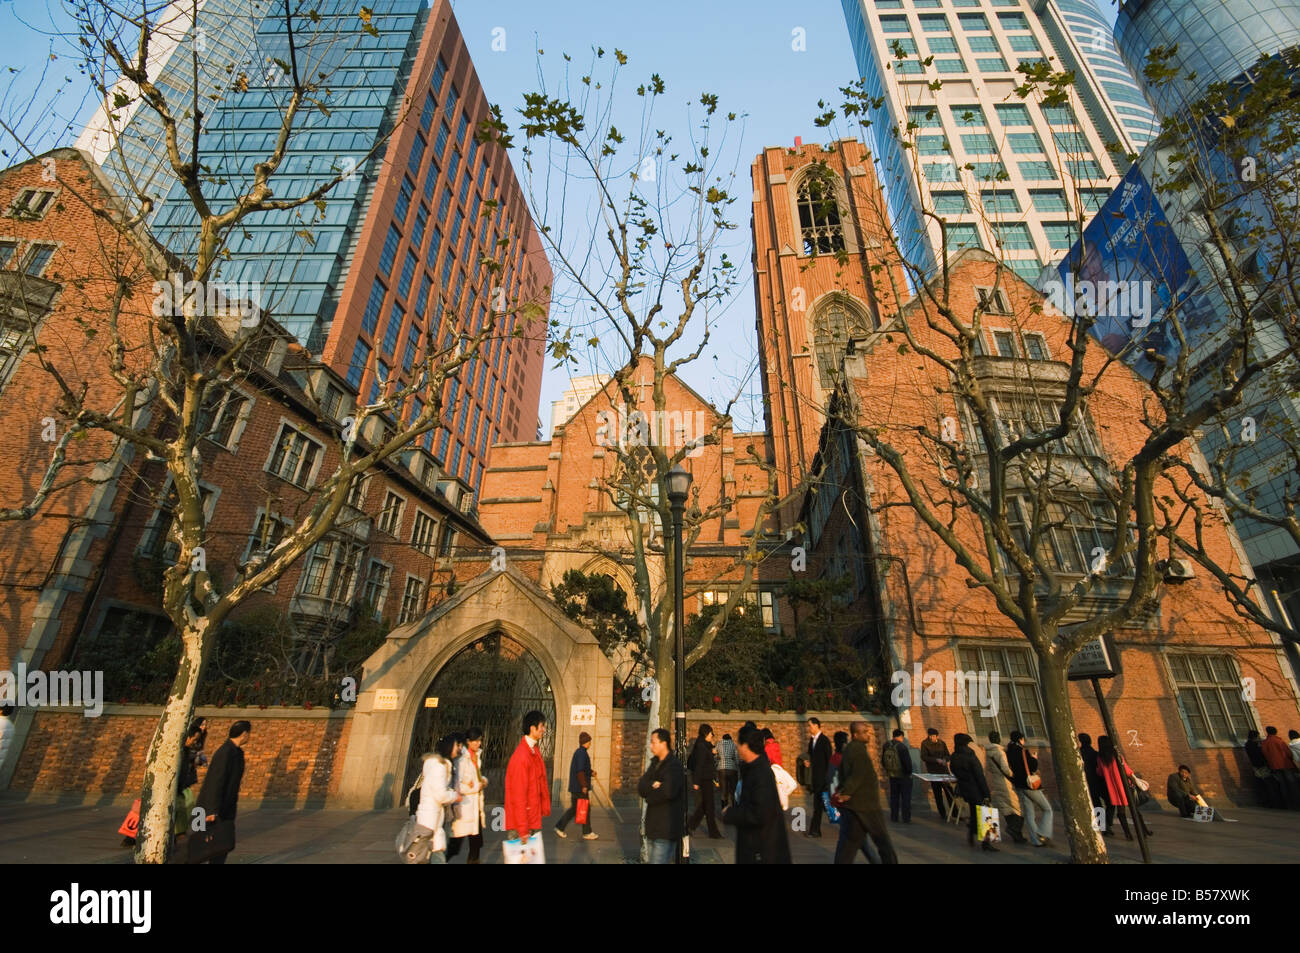 A Christian church among modern skyscrapers on Renmin Square, Puxi area, Shanghai, China, Asia - Stock Image